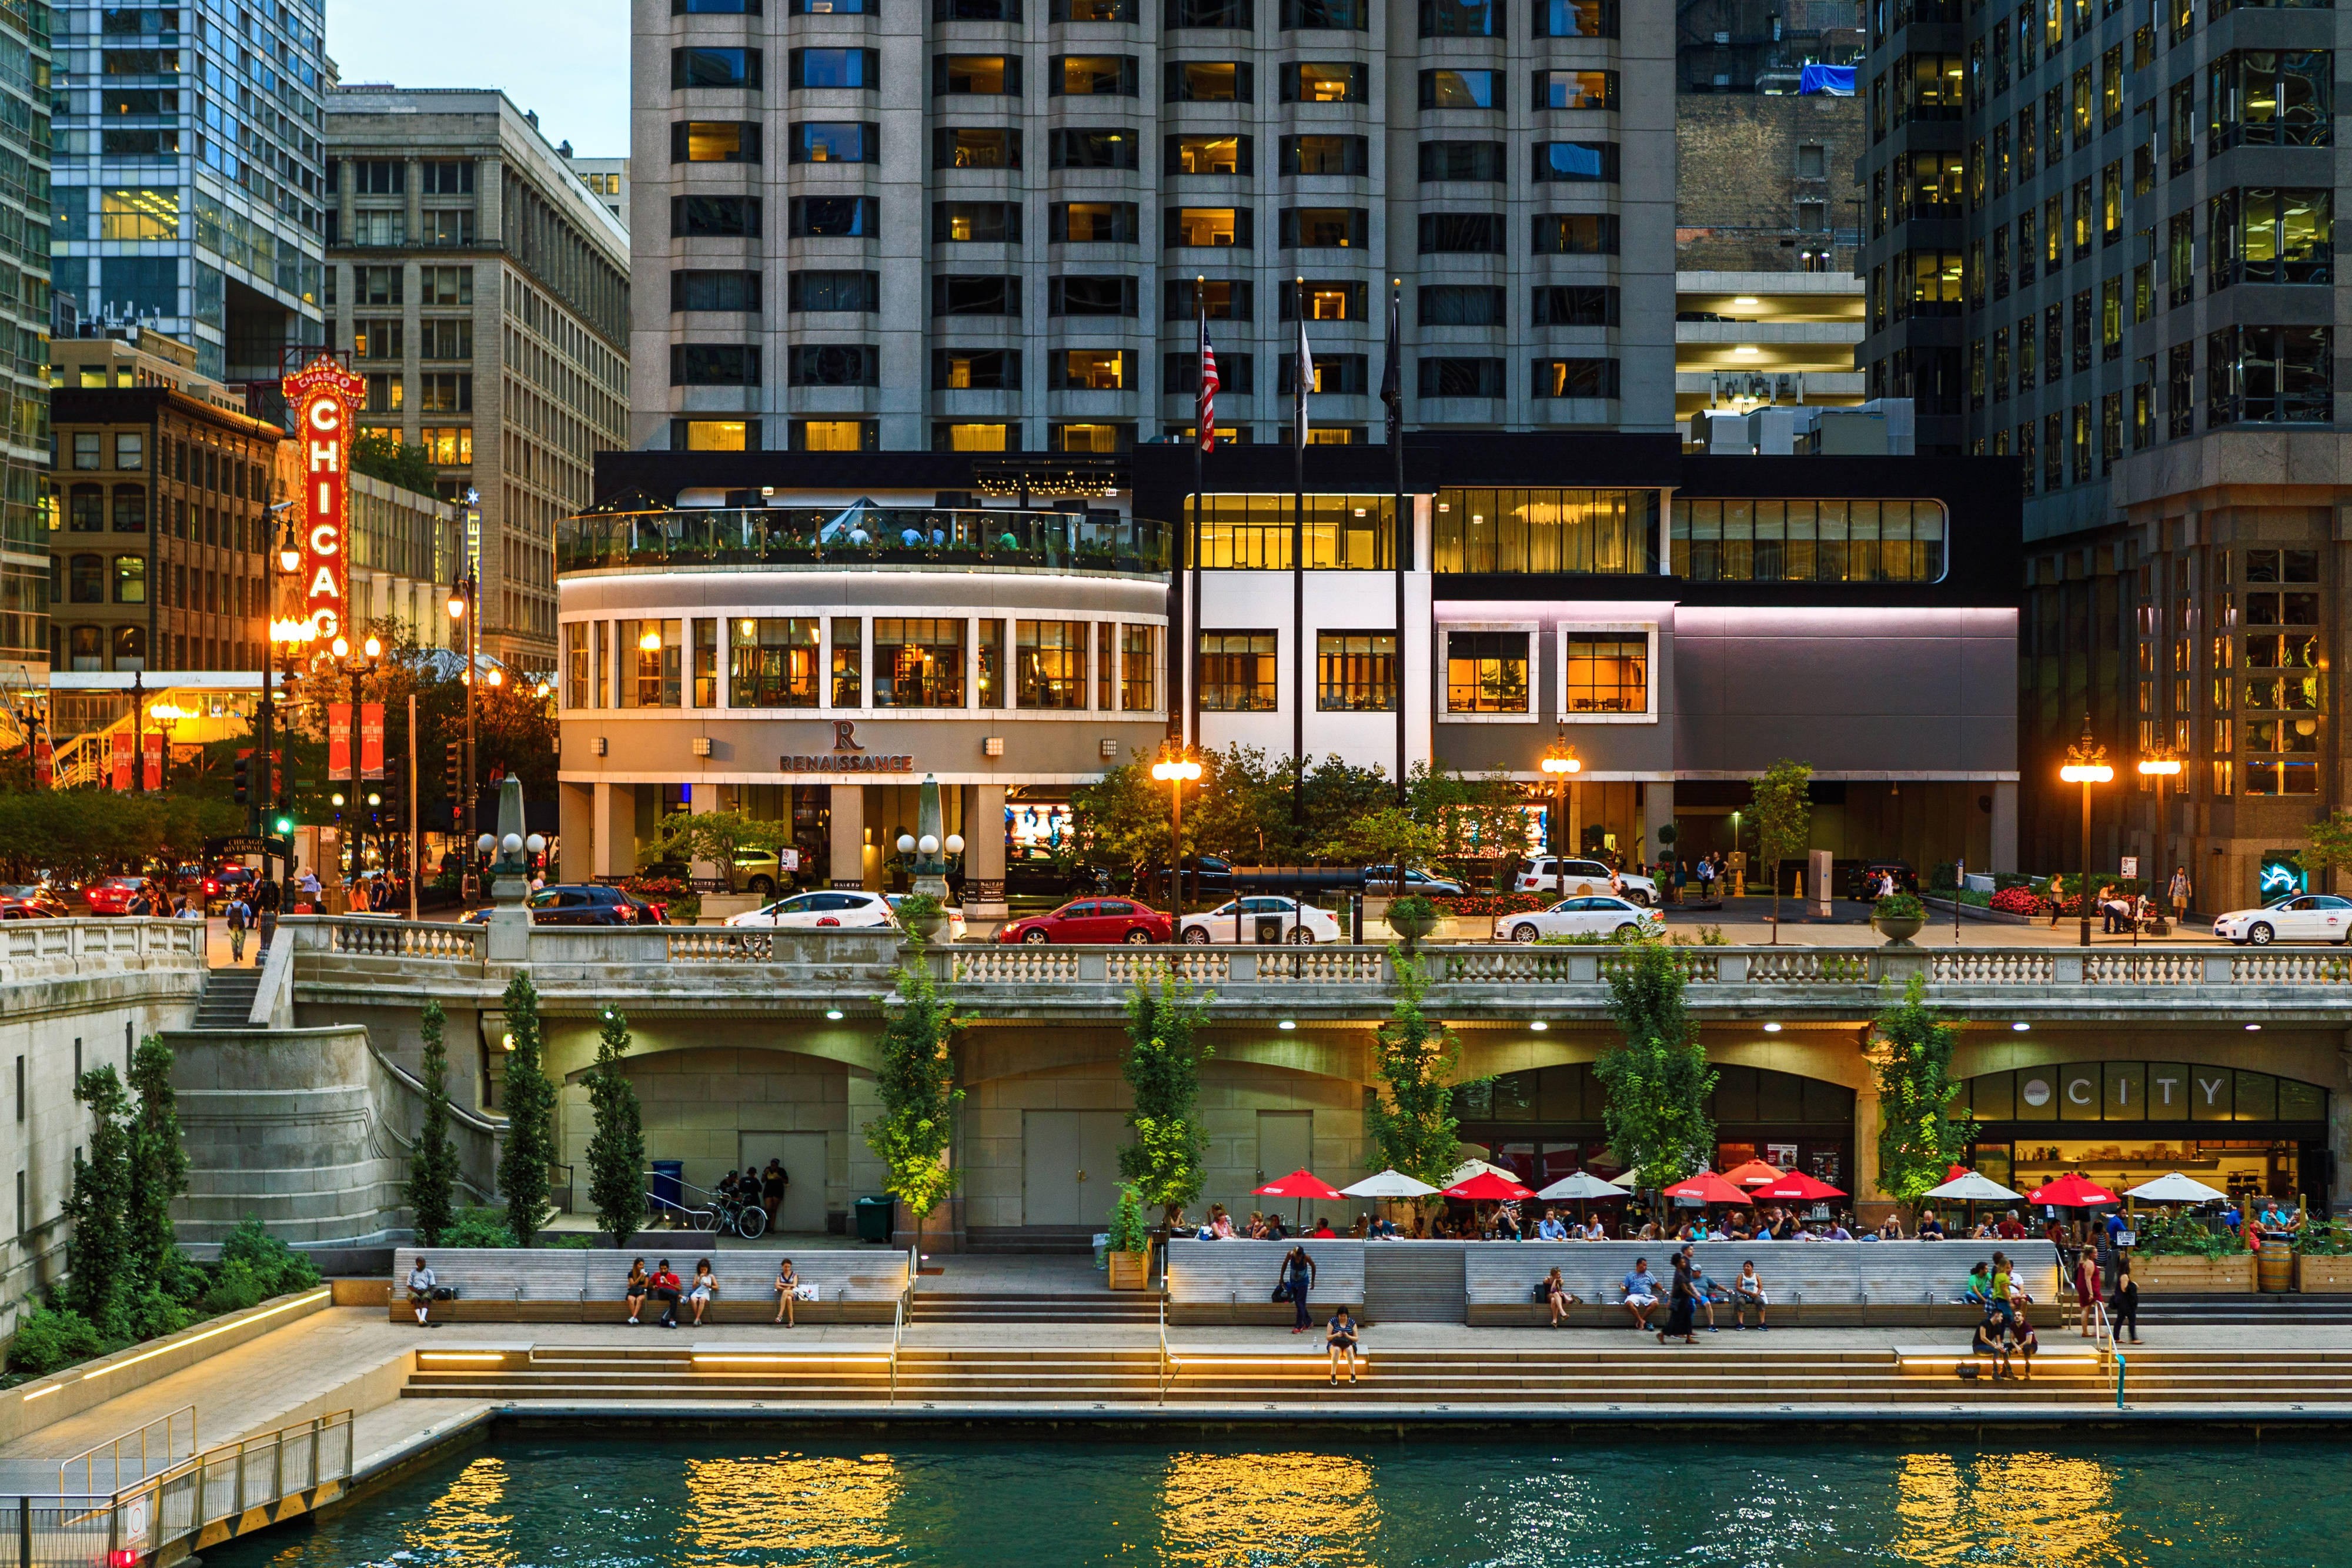 Renaissance Chicago Downtown Hotel Distinctive And Stylish